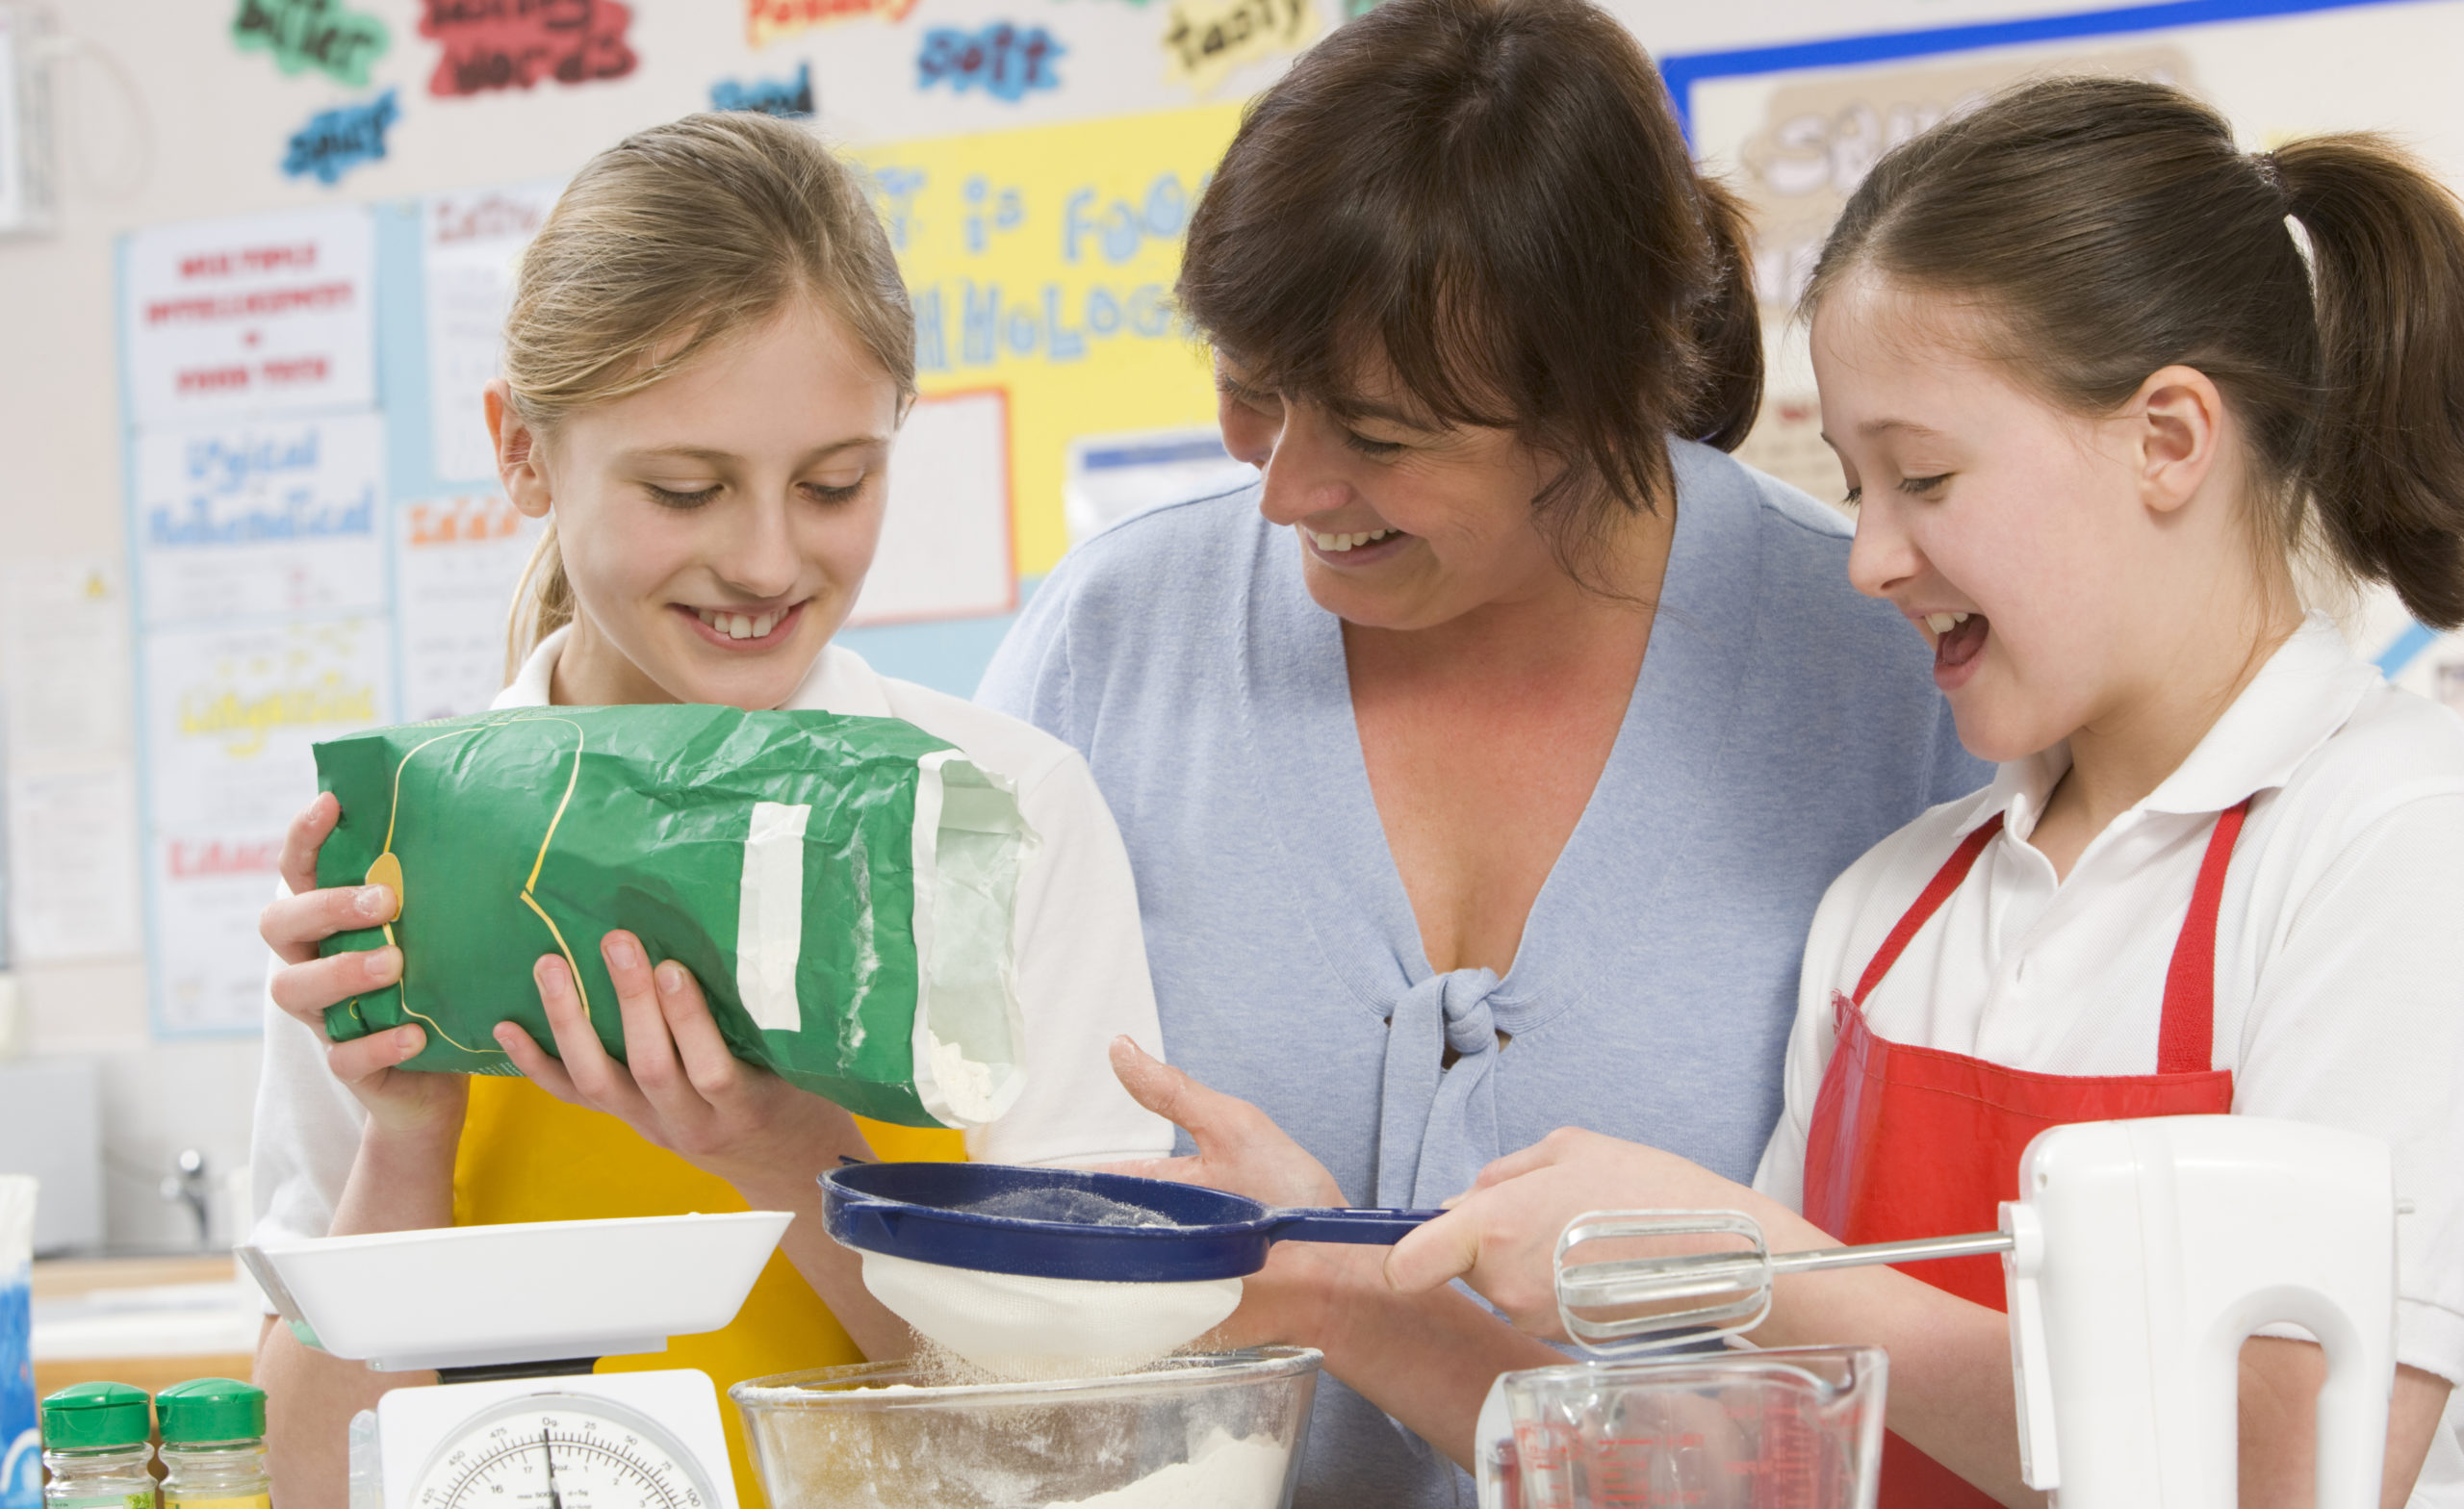 What are Life Skills and how can my child learn them?